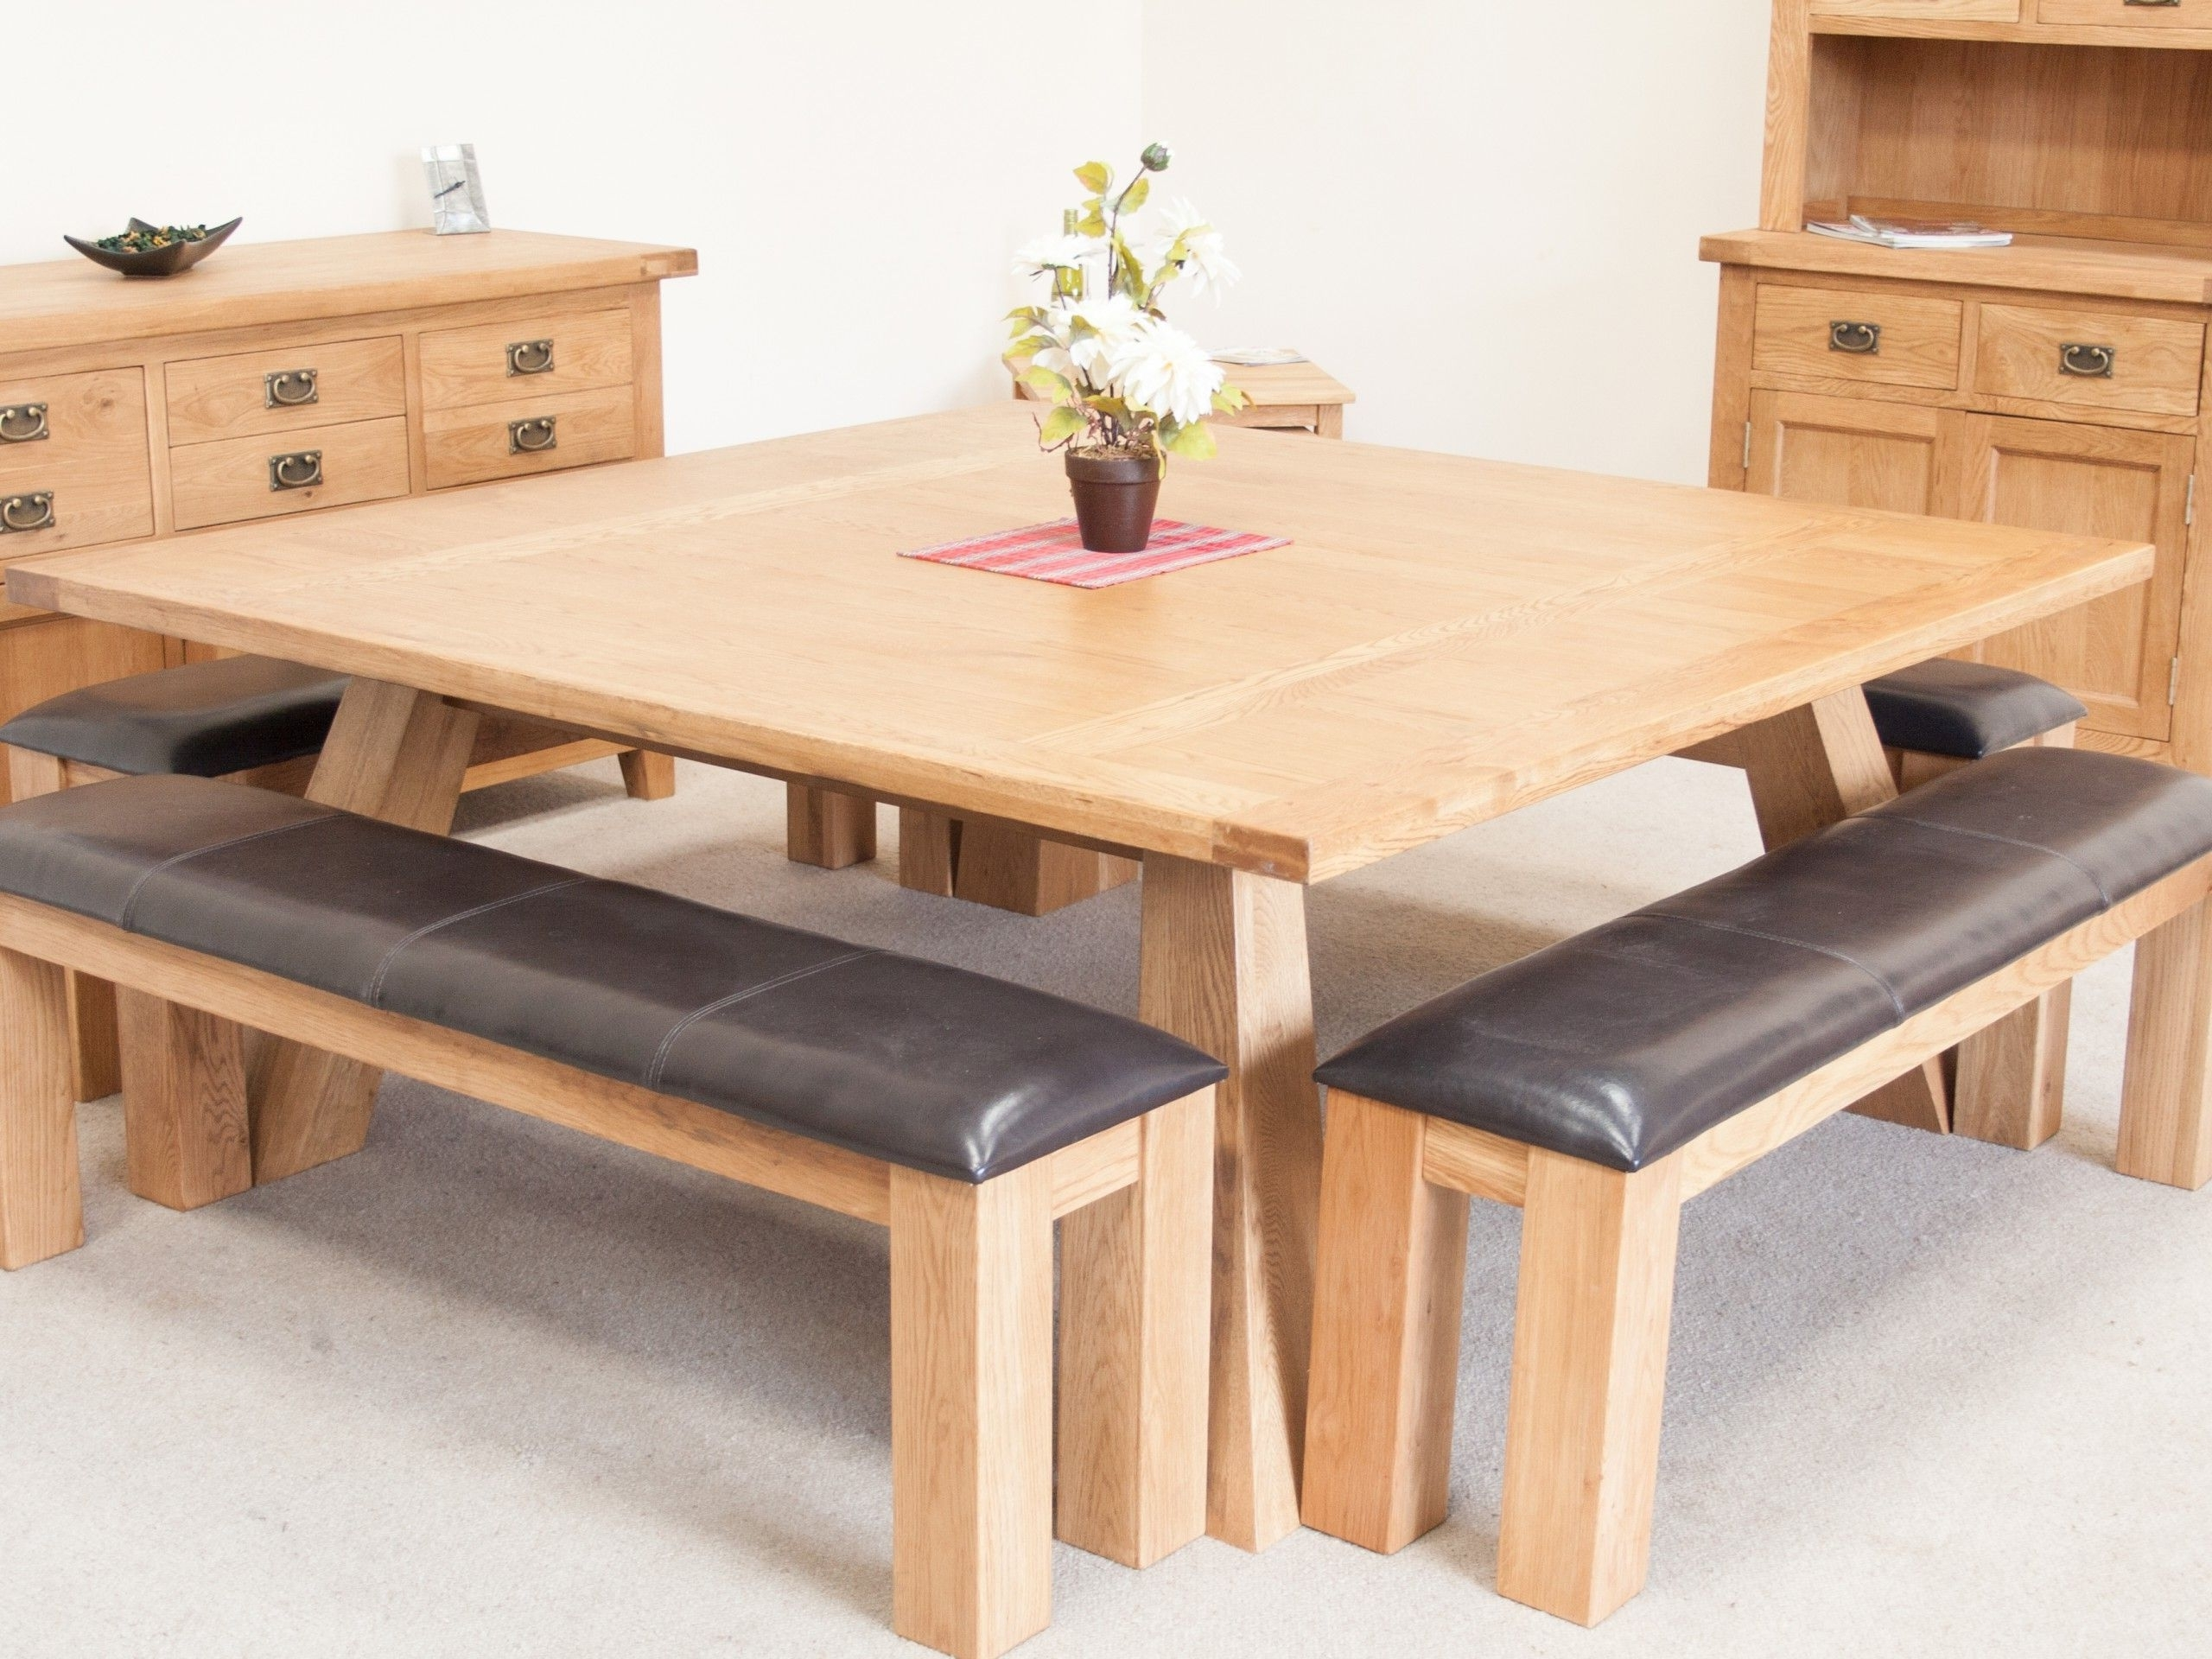 2017 Square Oak Dining Tables inside Country Oak 1.8M Large Square Oak Dining Room Table